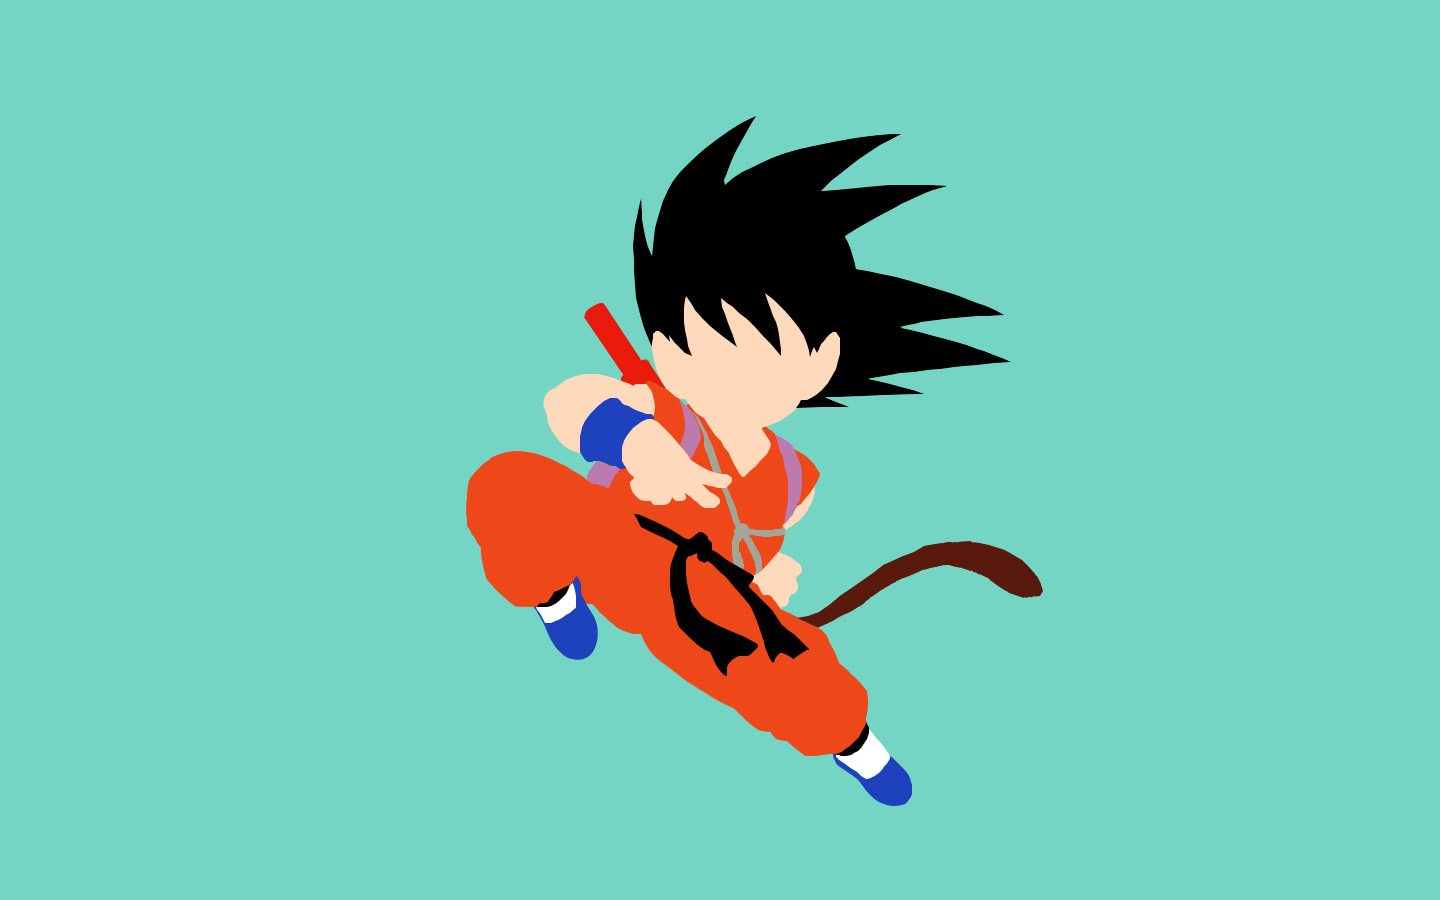 Goku Minimalist Wallpaper Posted By Michelle Thompson